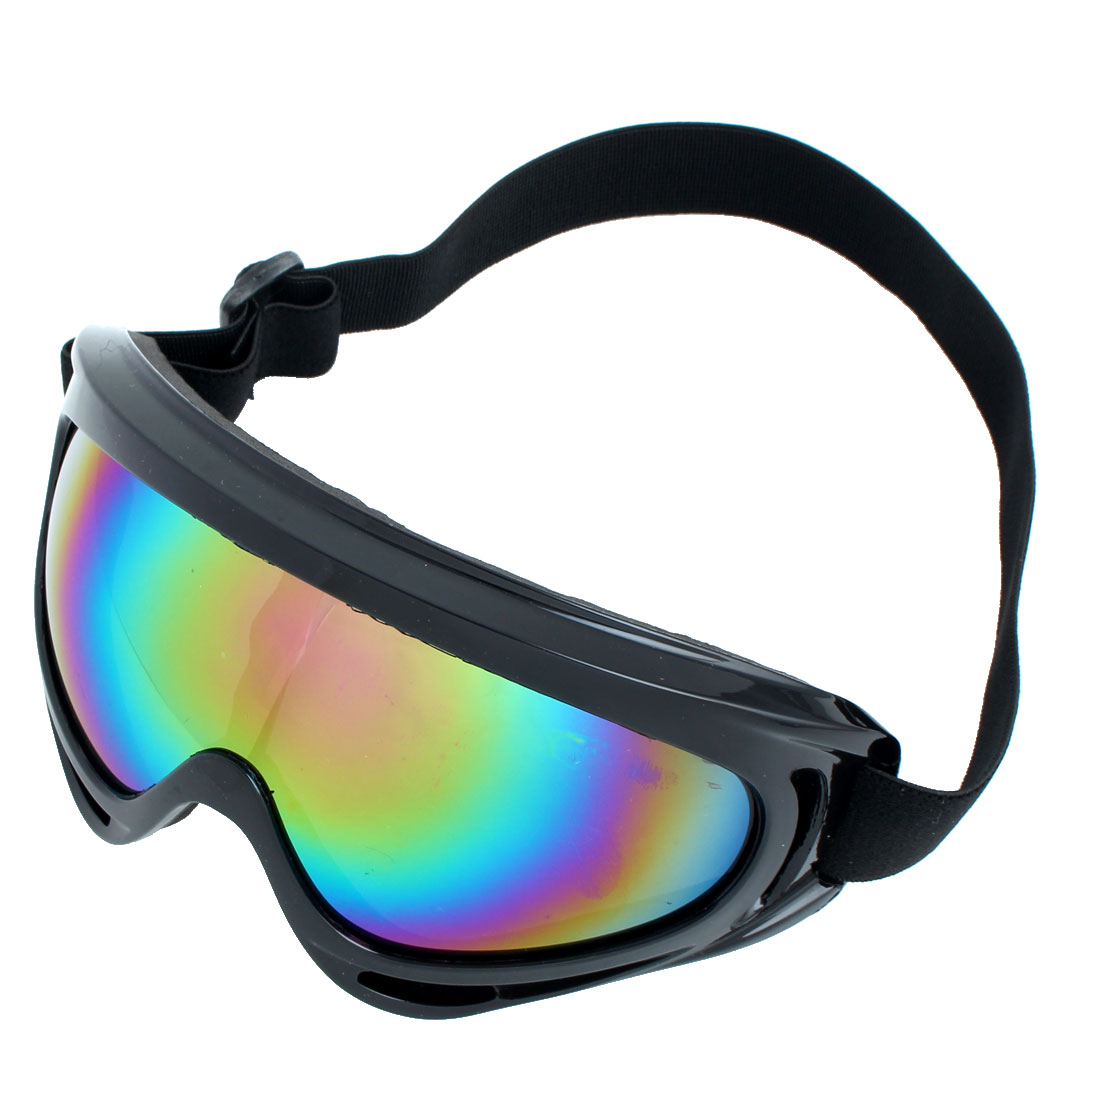 Ski Snowboard Skate Sports Goggles Glasses - NV123